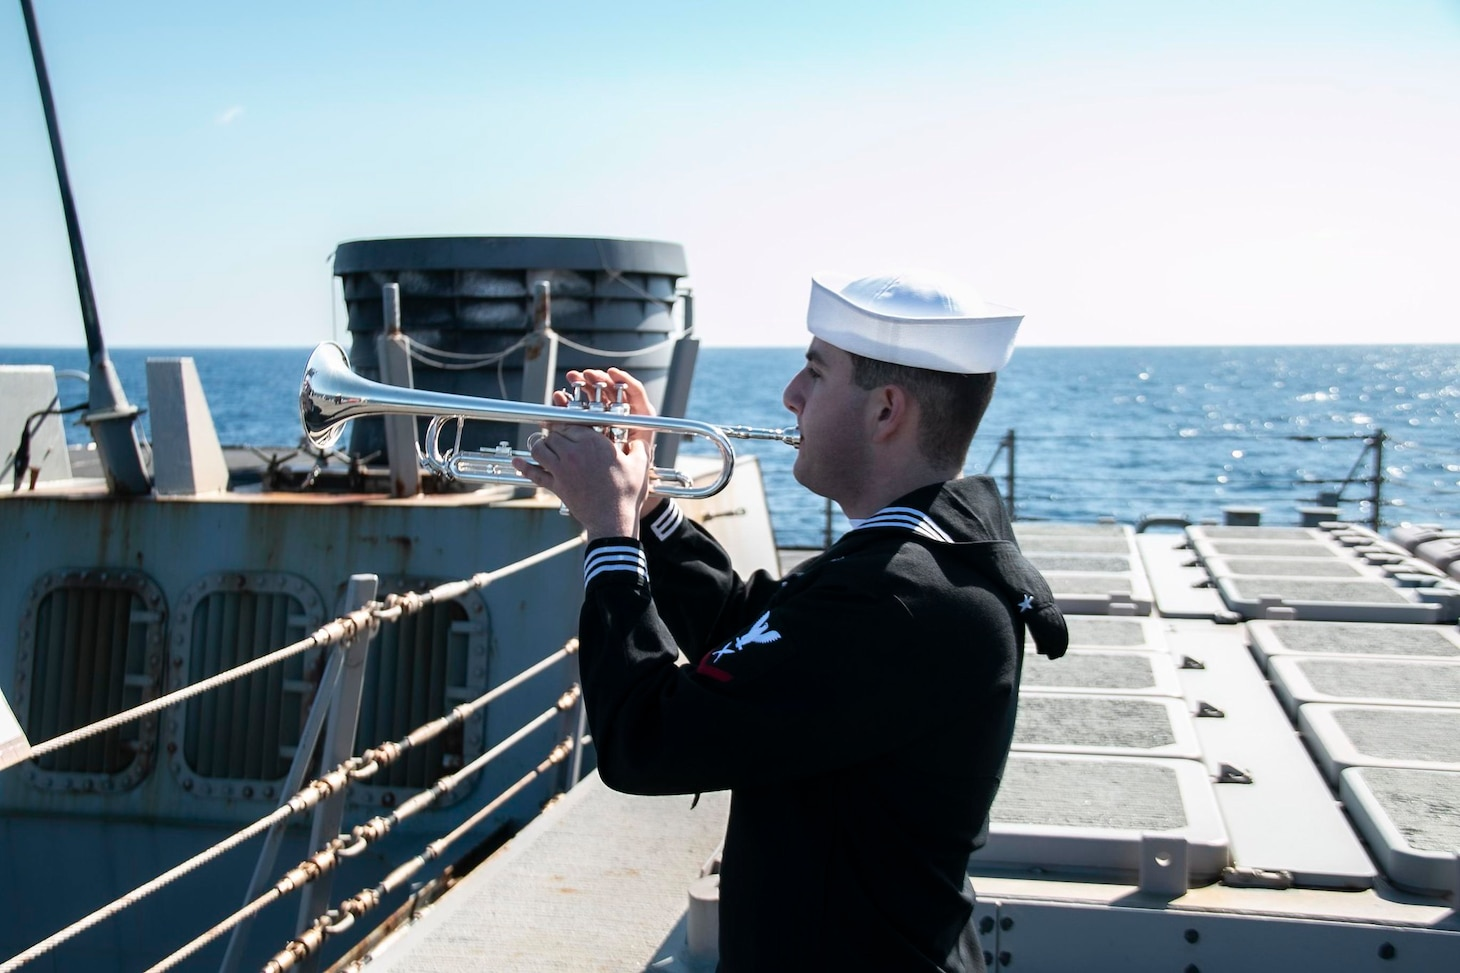 """210304-N-RG171-0337 MEDITERRANEAN SEA (Mar. 4, 2021) Yeoman 3rd Class Mark Martinez plays """"Taps"""" during a burial-at-sea aboard the Arleigh Burke-class guided-missile destroyer USS Donald Cook (DDG 75), Mar. 4, 2021. Donald Cook, forward-deployed to Rota, Spain, is on patrol in the U.S. Sixth Fleet area of operations in support of regional allies and partners and U.S. national security in Europe and Africa. (U.S. Navy photo by Machinist's Mate 1st Class Peter Stitzel/Released)"""